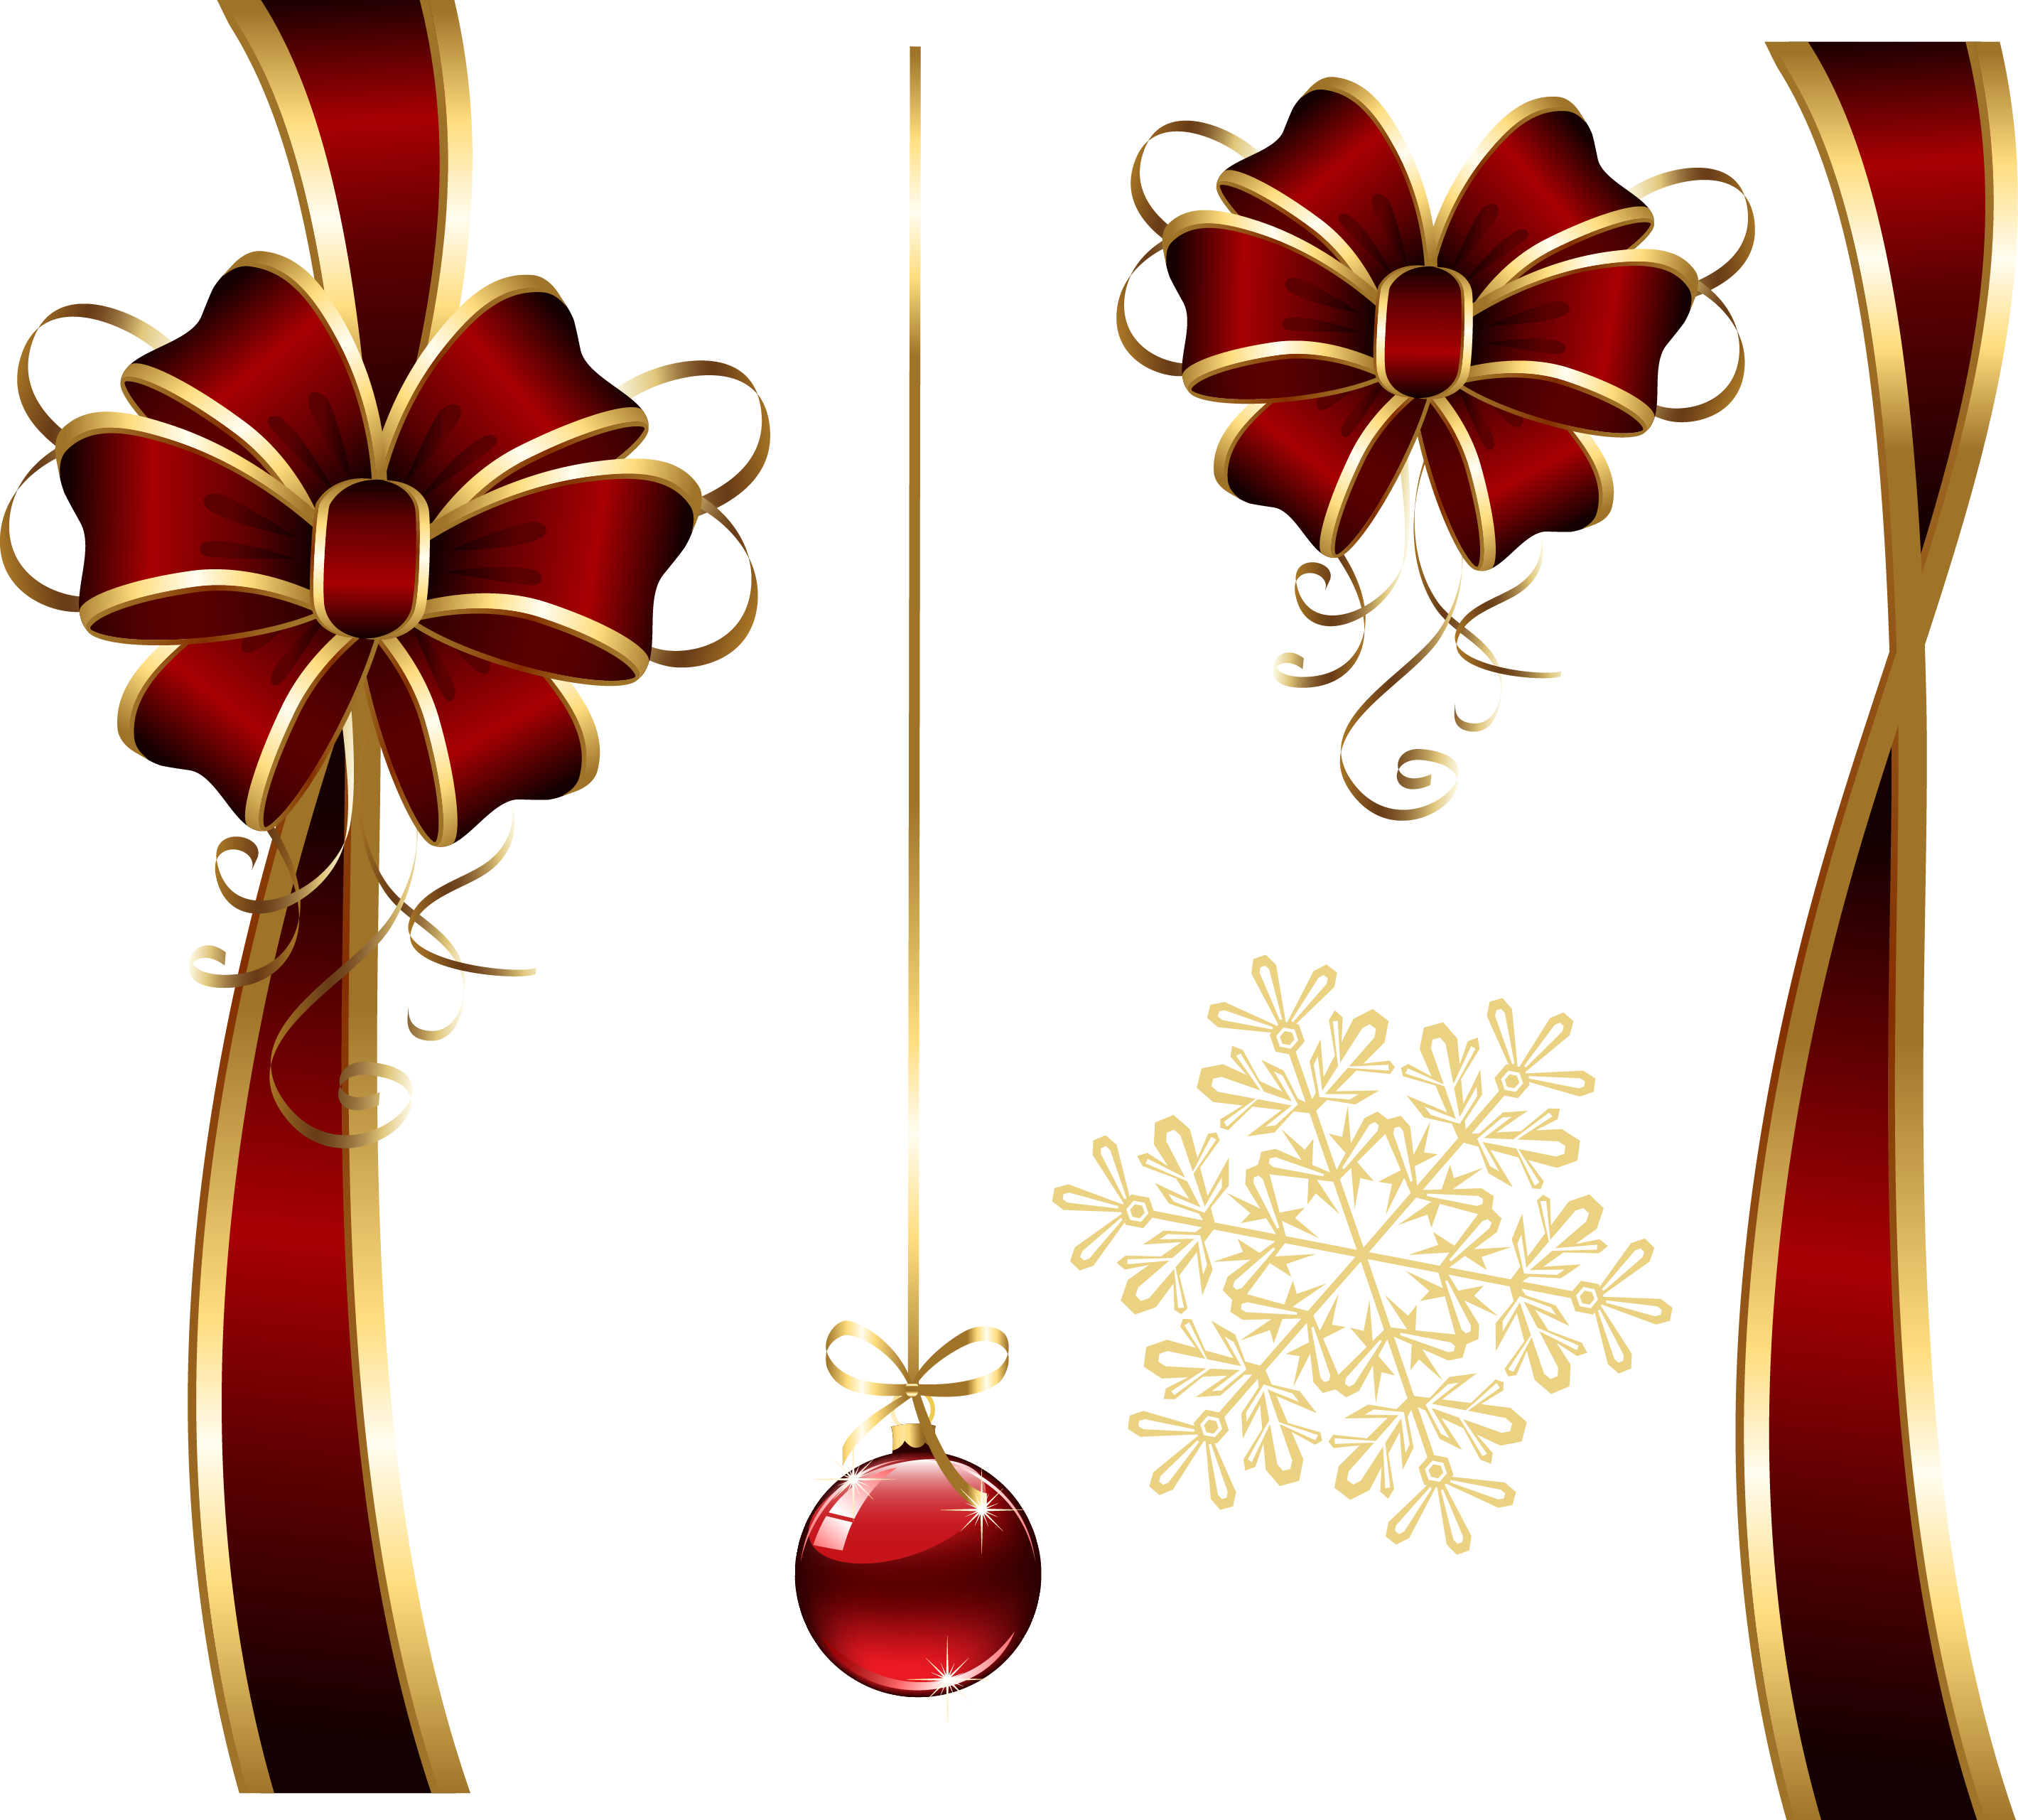 Transparent christmas candle clipart - Decoratives Png Picture Gallery Yopriceville High View - Christmas Decorative Item Png